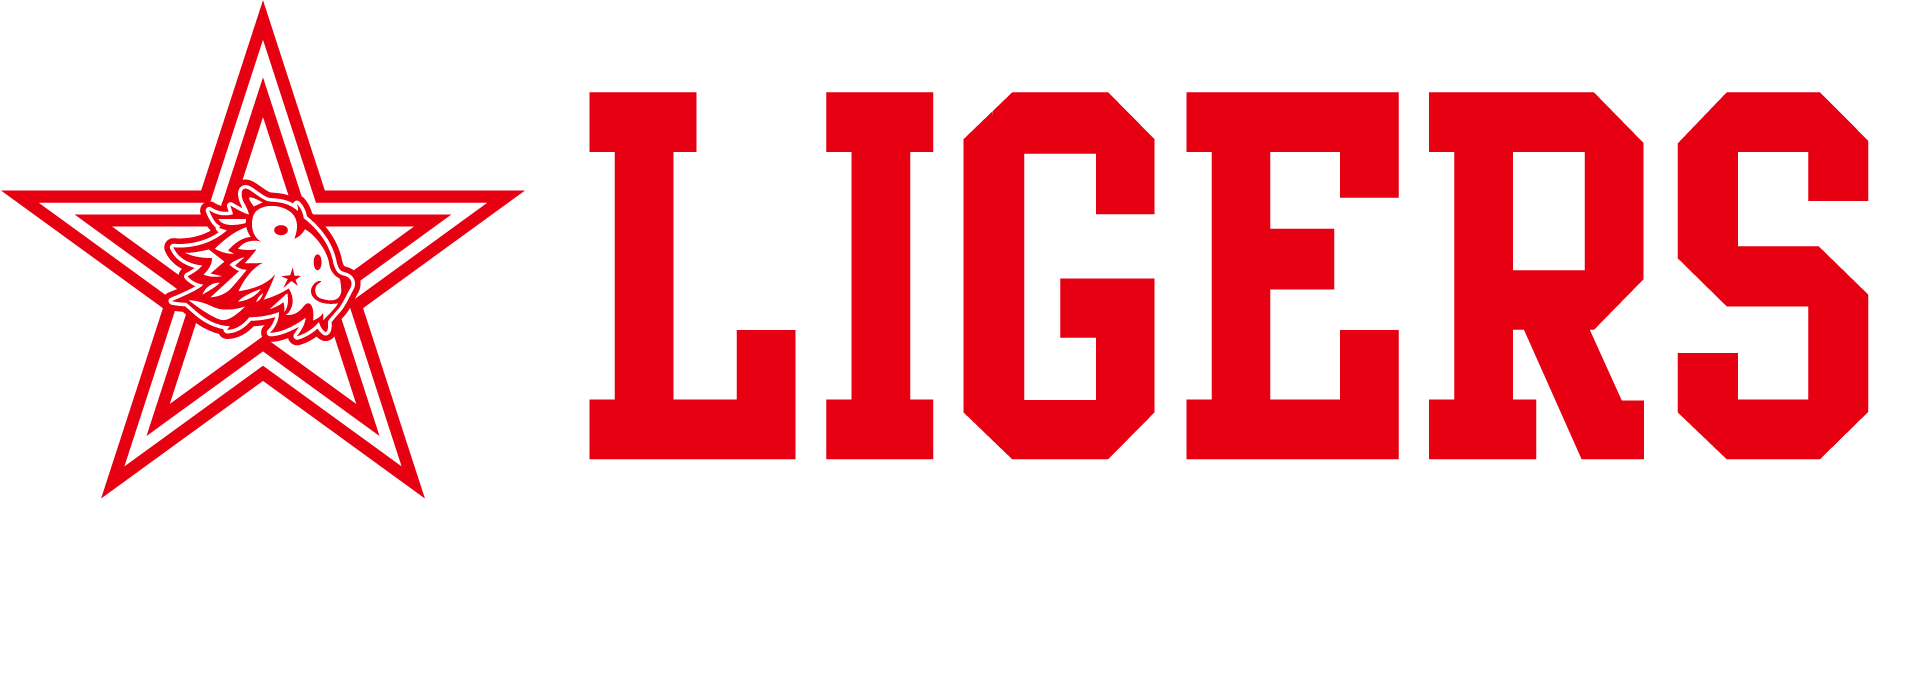 Roppongi CheerLeading Team LIGERS